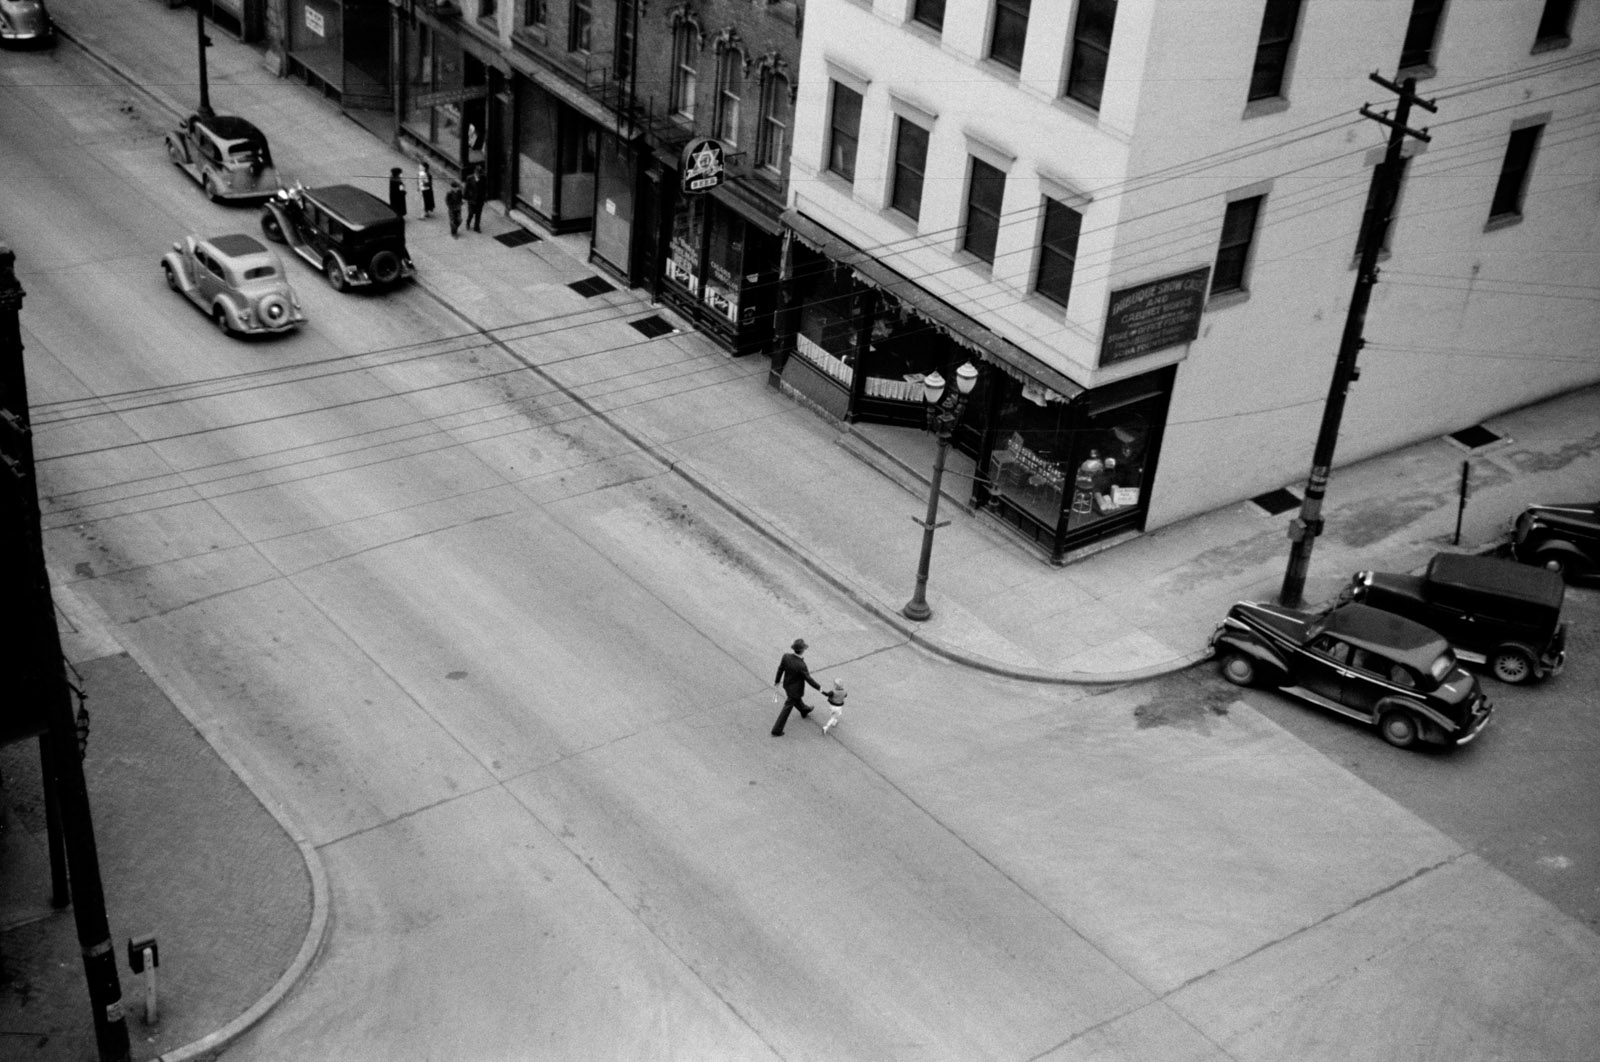 Man and boy crossing the street, Dubuque, Iowa 1940